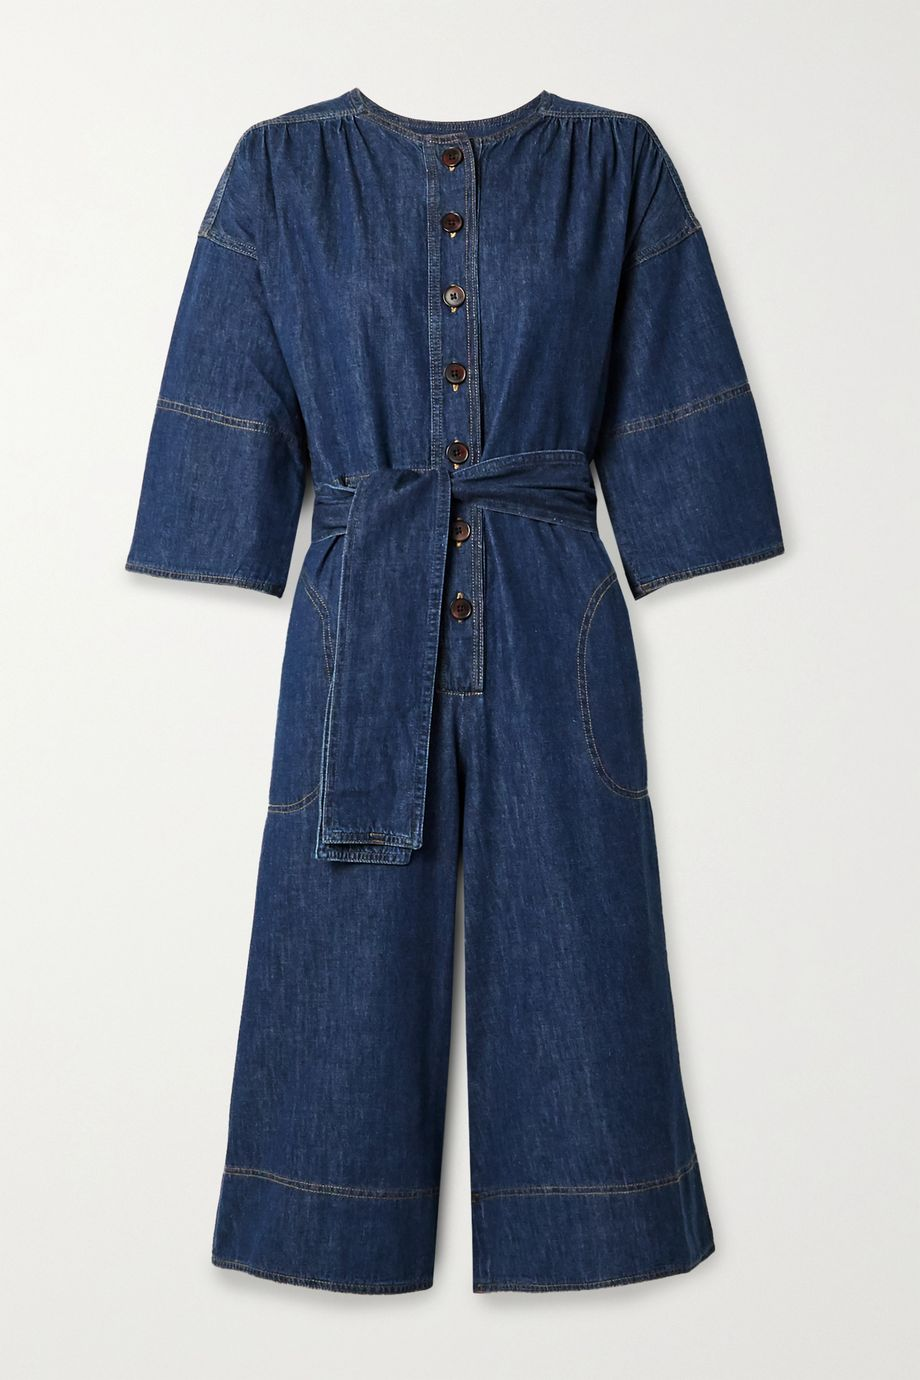 Vanessa Bruno Nikita belted denim jumpsuit